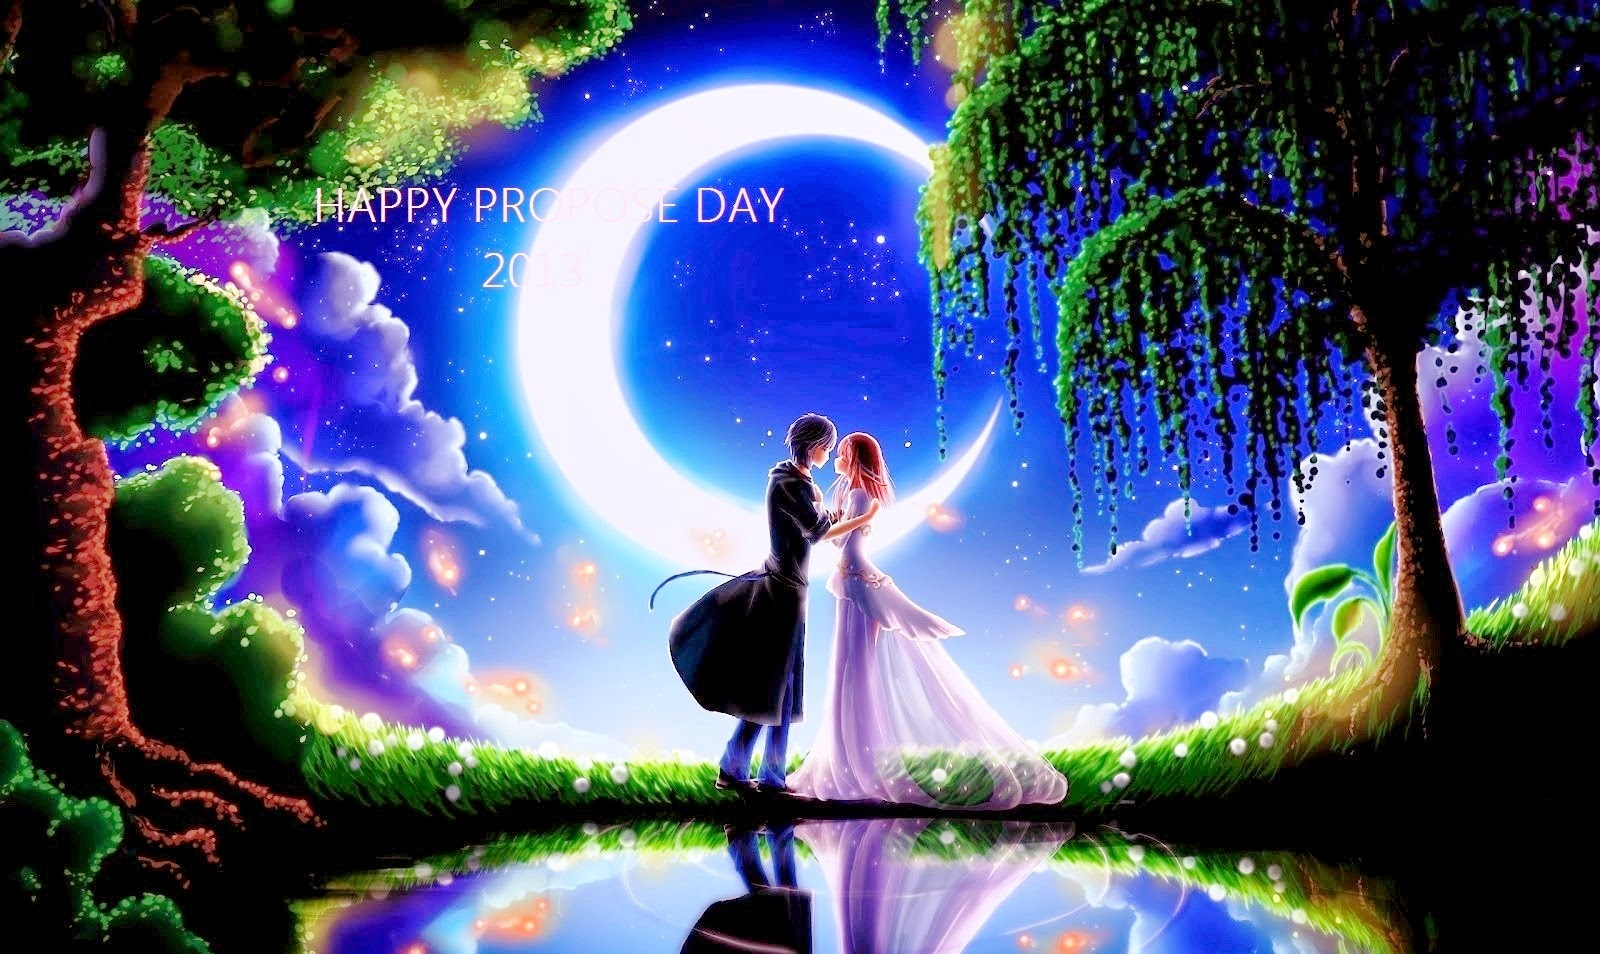 Happy propose day amazing painting wallpapers